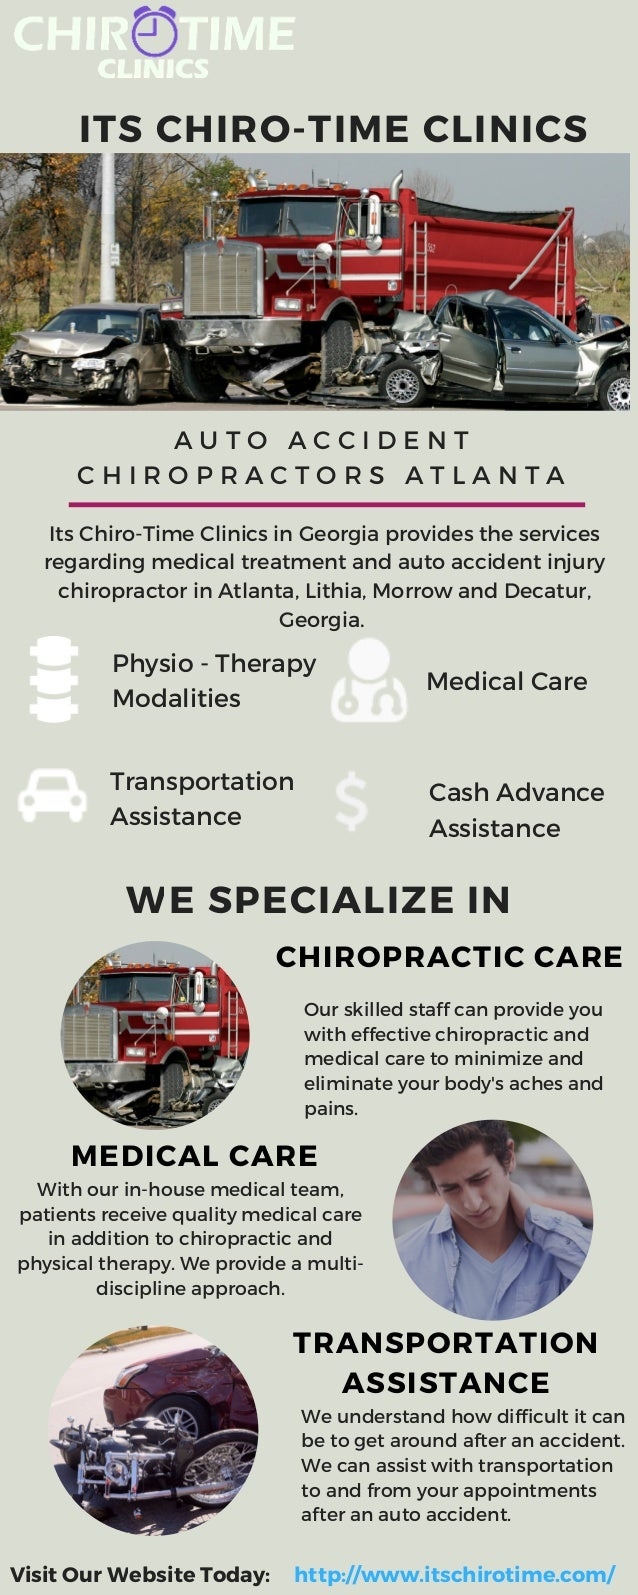 Cash Advance For Chiropractic Care